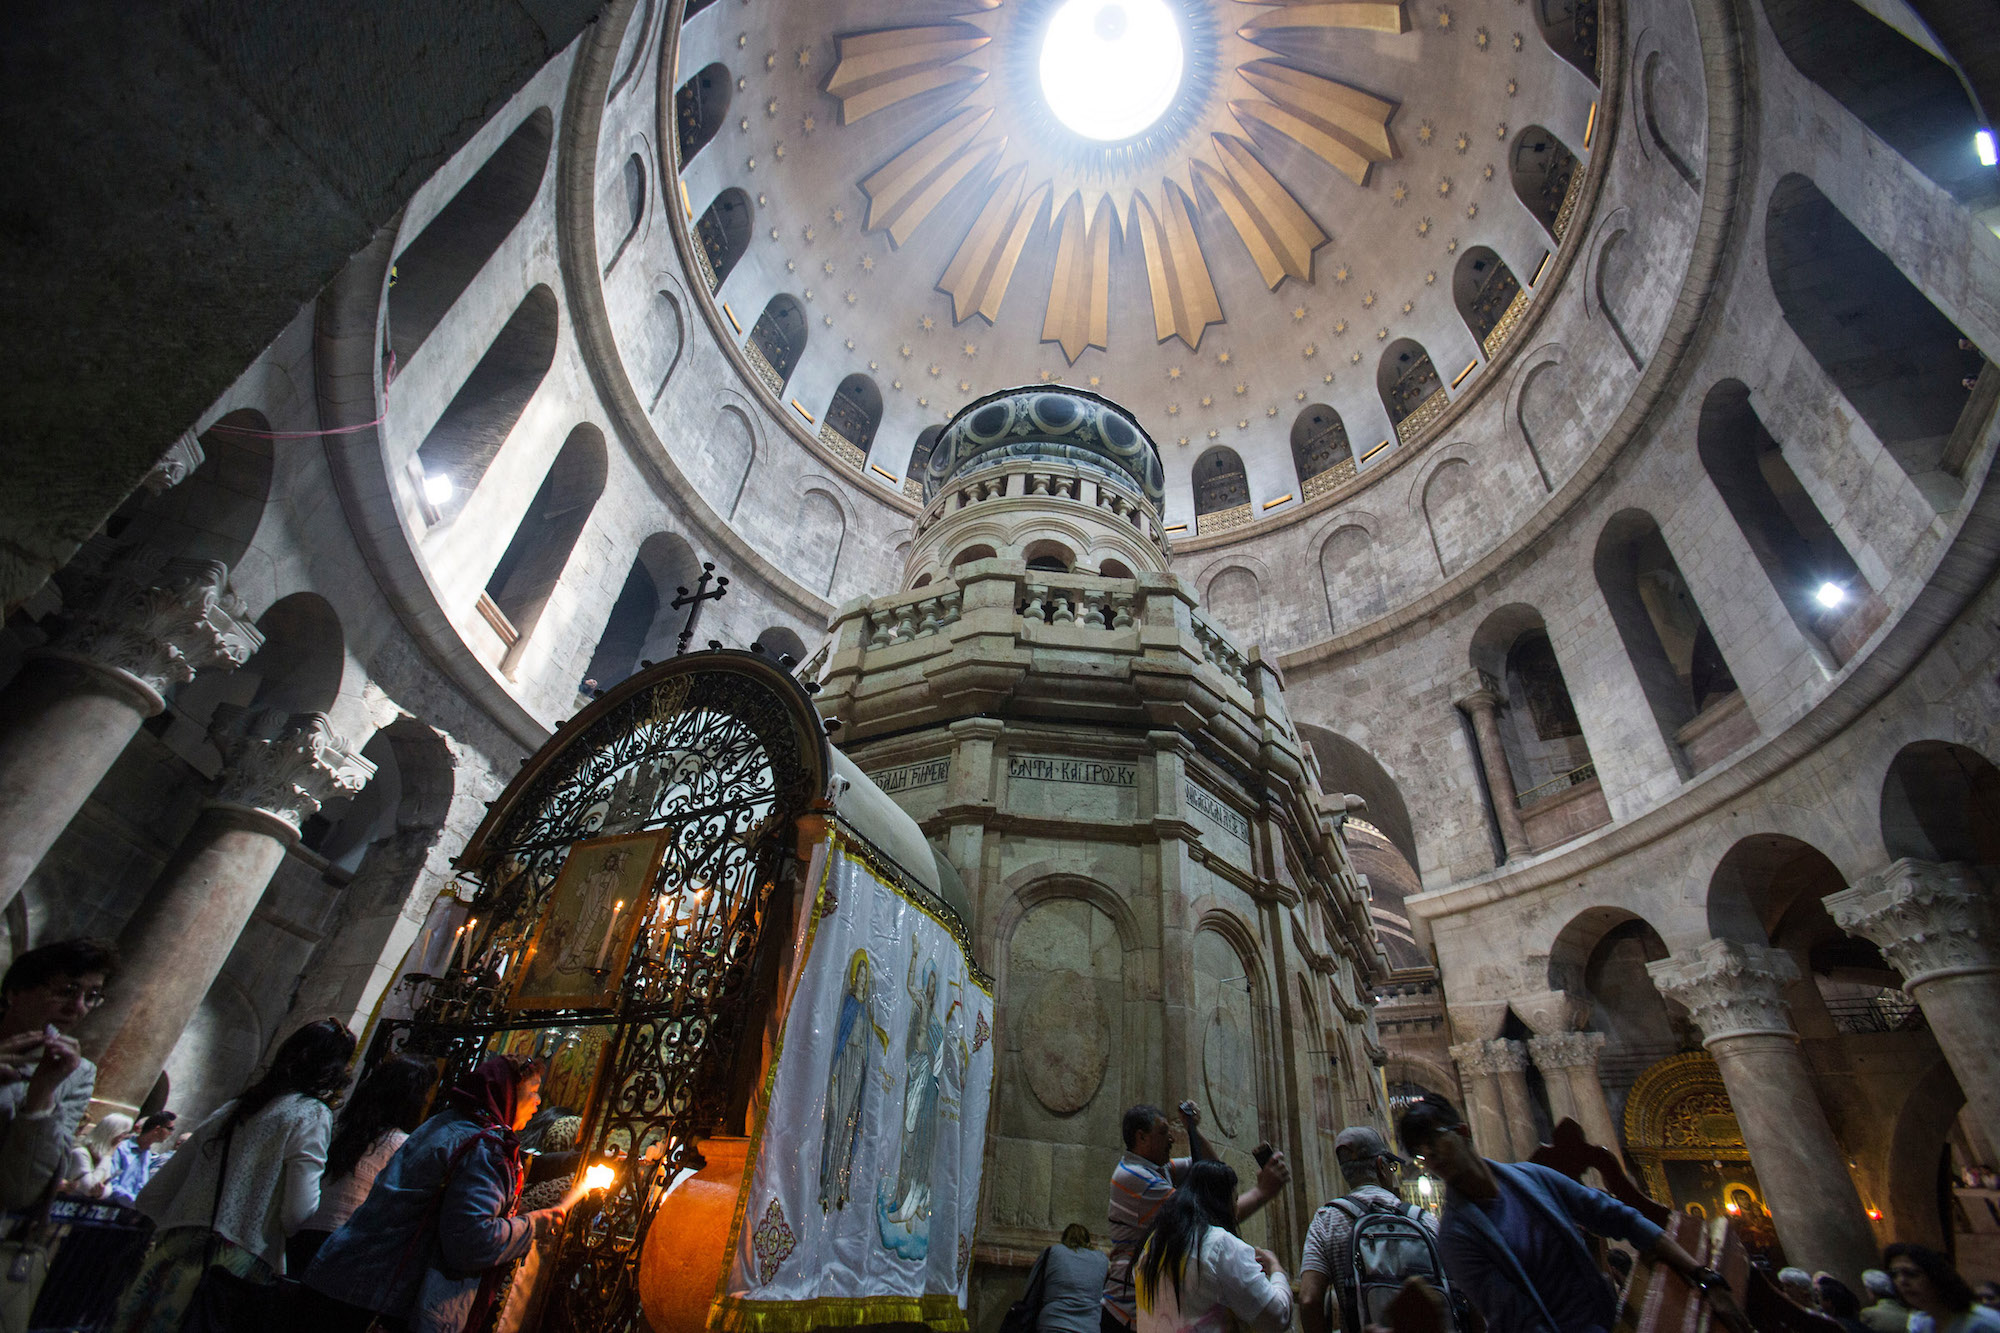 Christian pilgrims during the Easter Sunday procession at the Church of the Holy Sepulchre, which is believed to be the site of the crucifixion and burial of Jesus Christ. Thousands of Christians from around the world flocked to Jerusalem to commemorate the day when, according to Christian tradition, Jesus resurrected. Jerusalem, April 16, 2017 (Photo by Heidi Levine/GroundTruth).